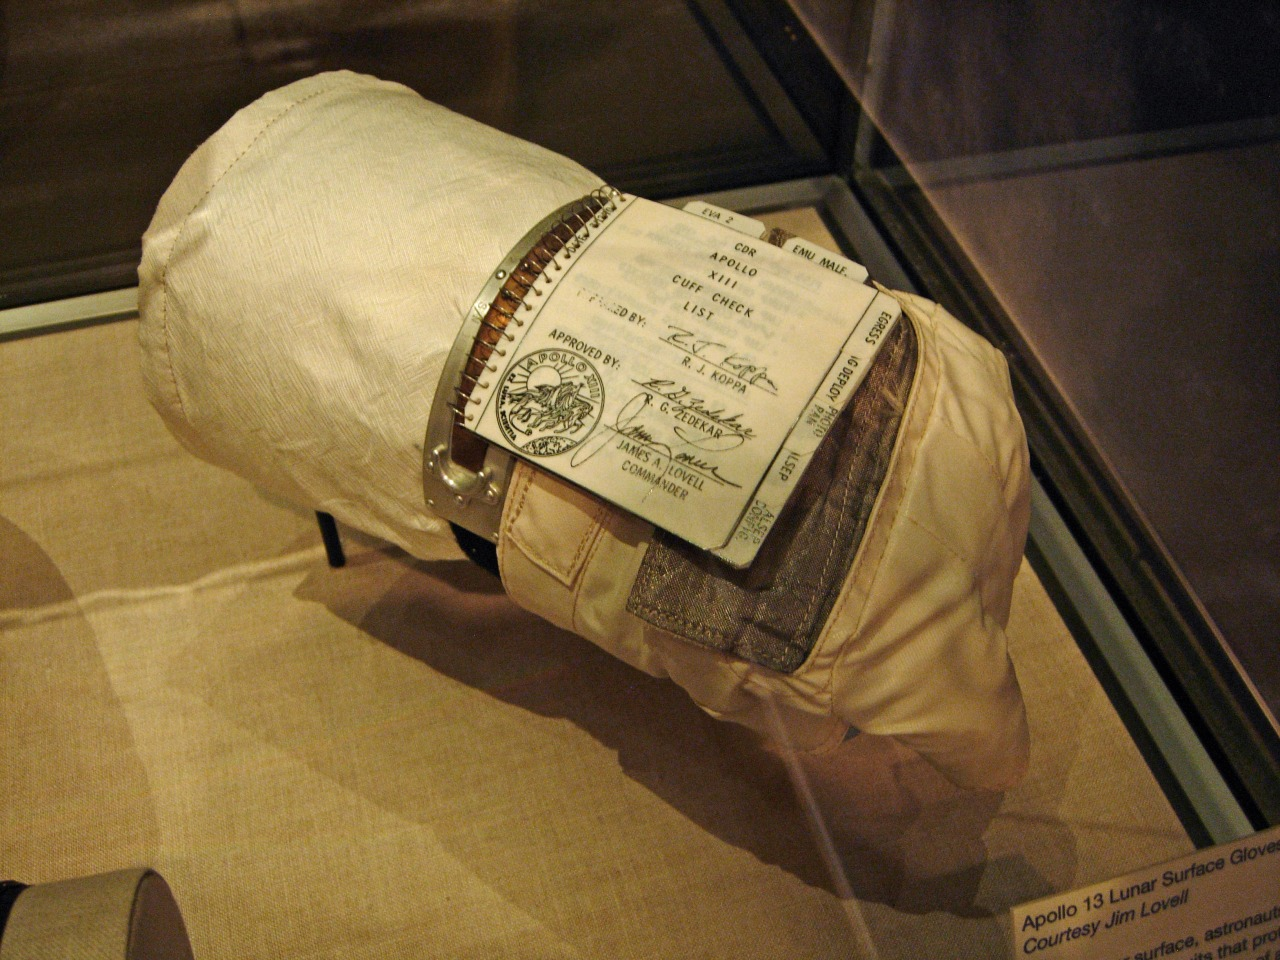 Jim Lovell's glove (with attached checklist) from the ill-fated Apollo 13 mission